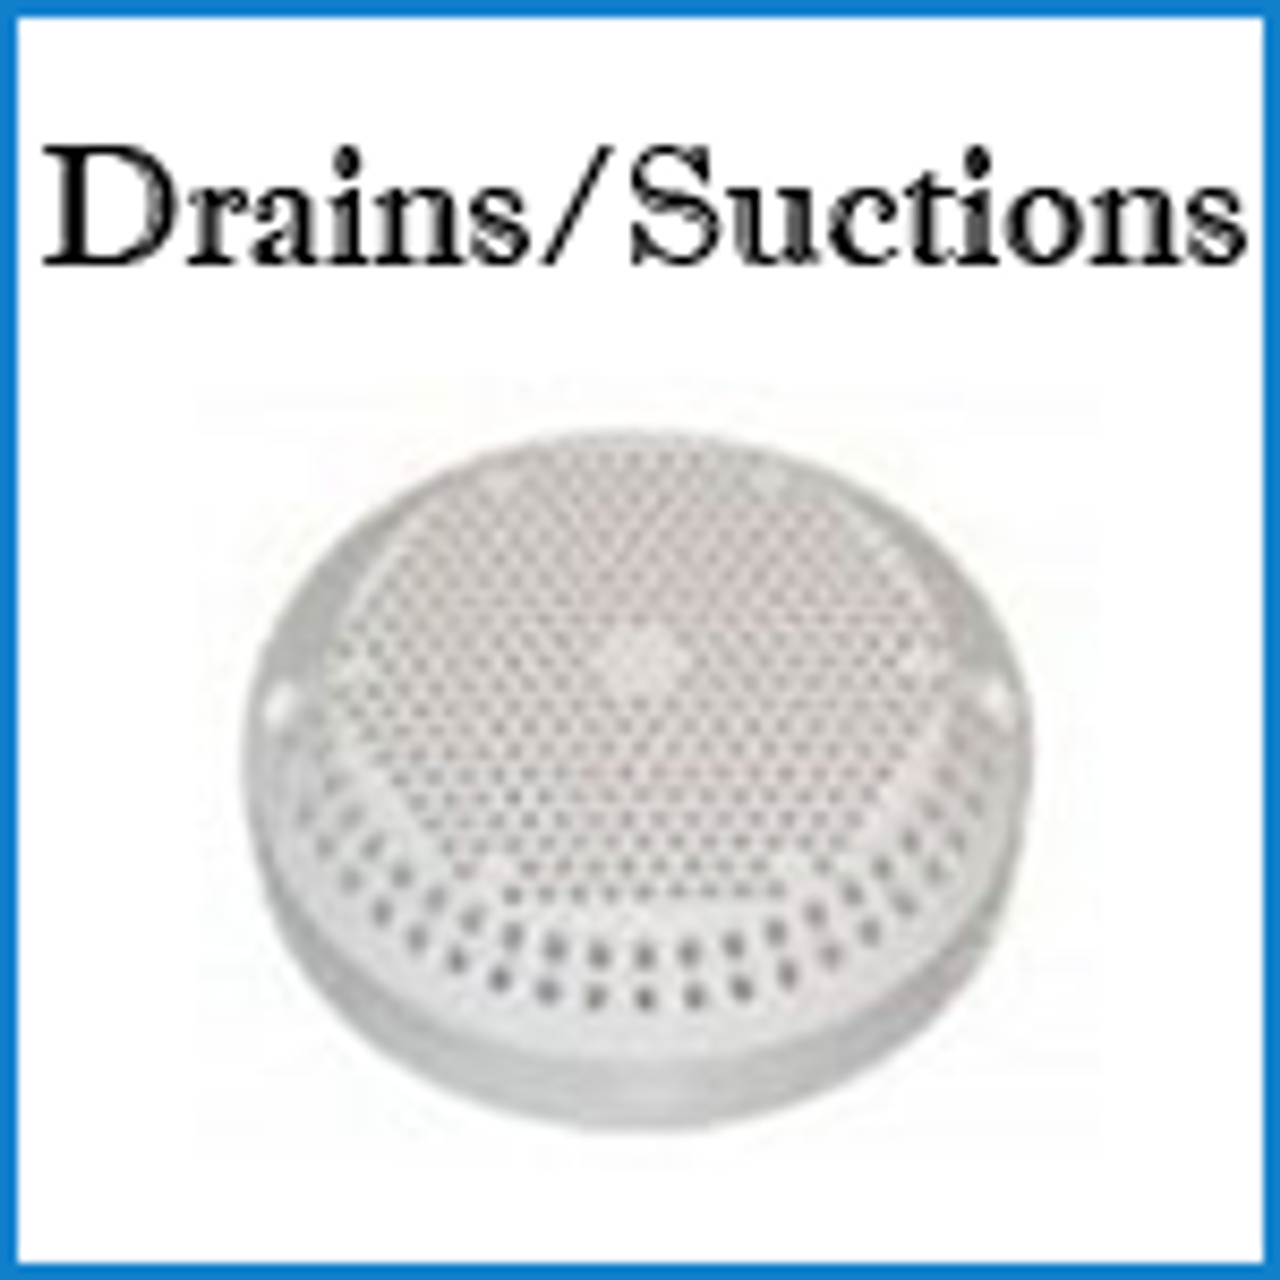 D1 Suctions Drains